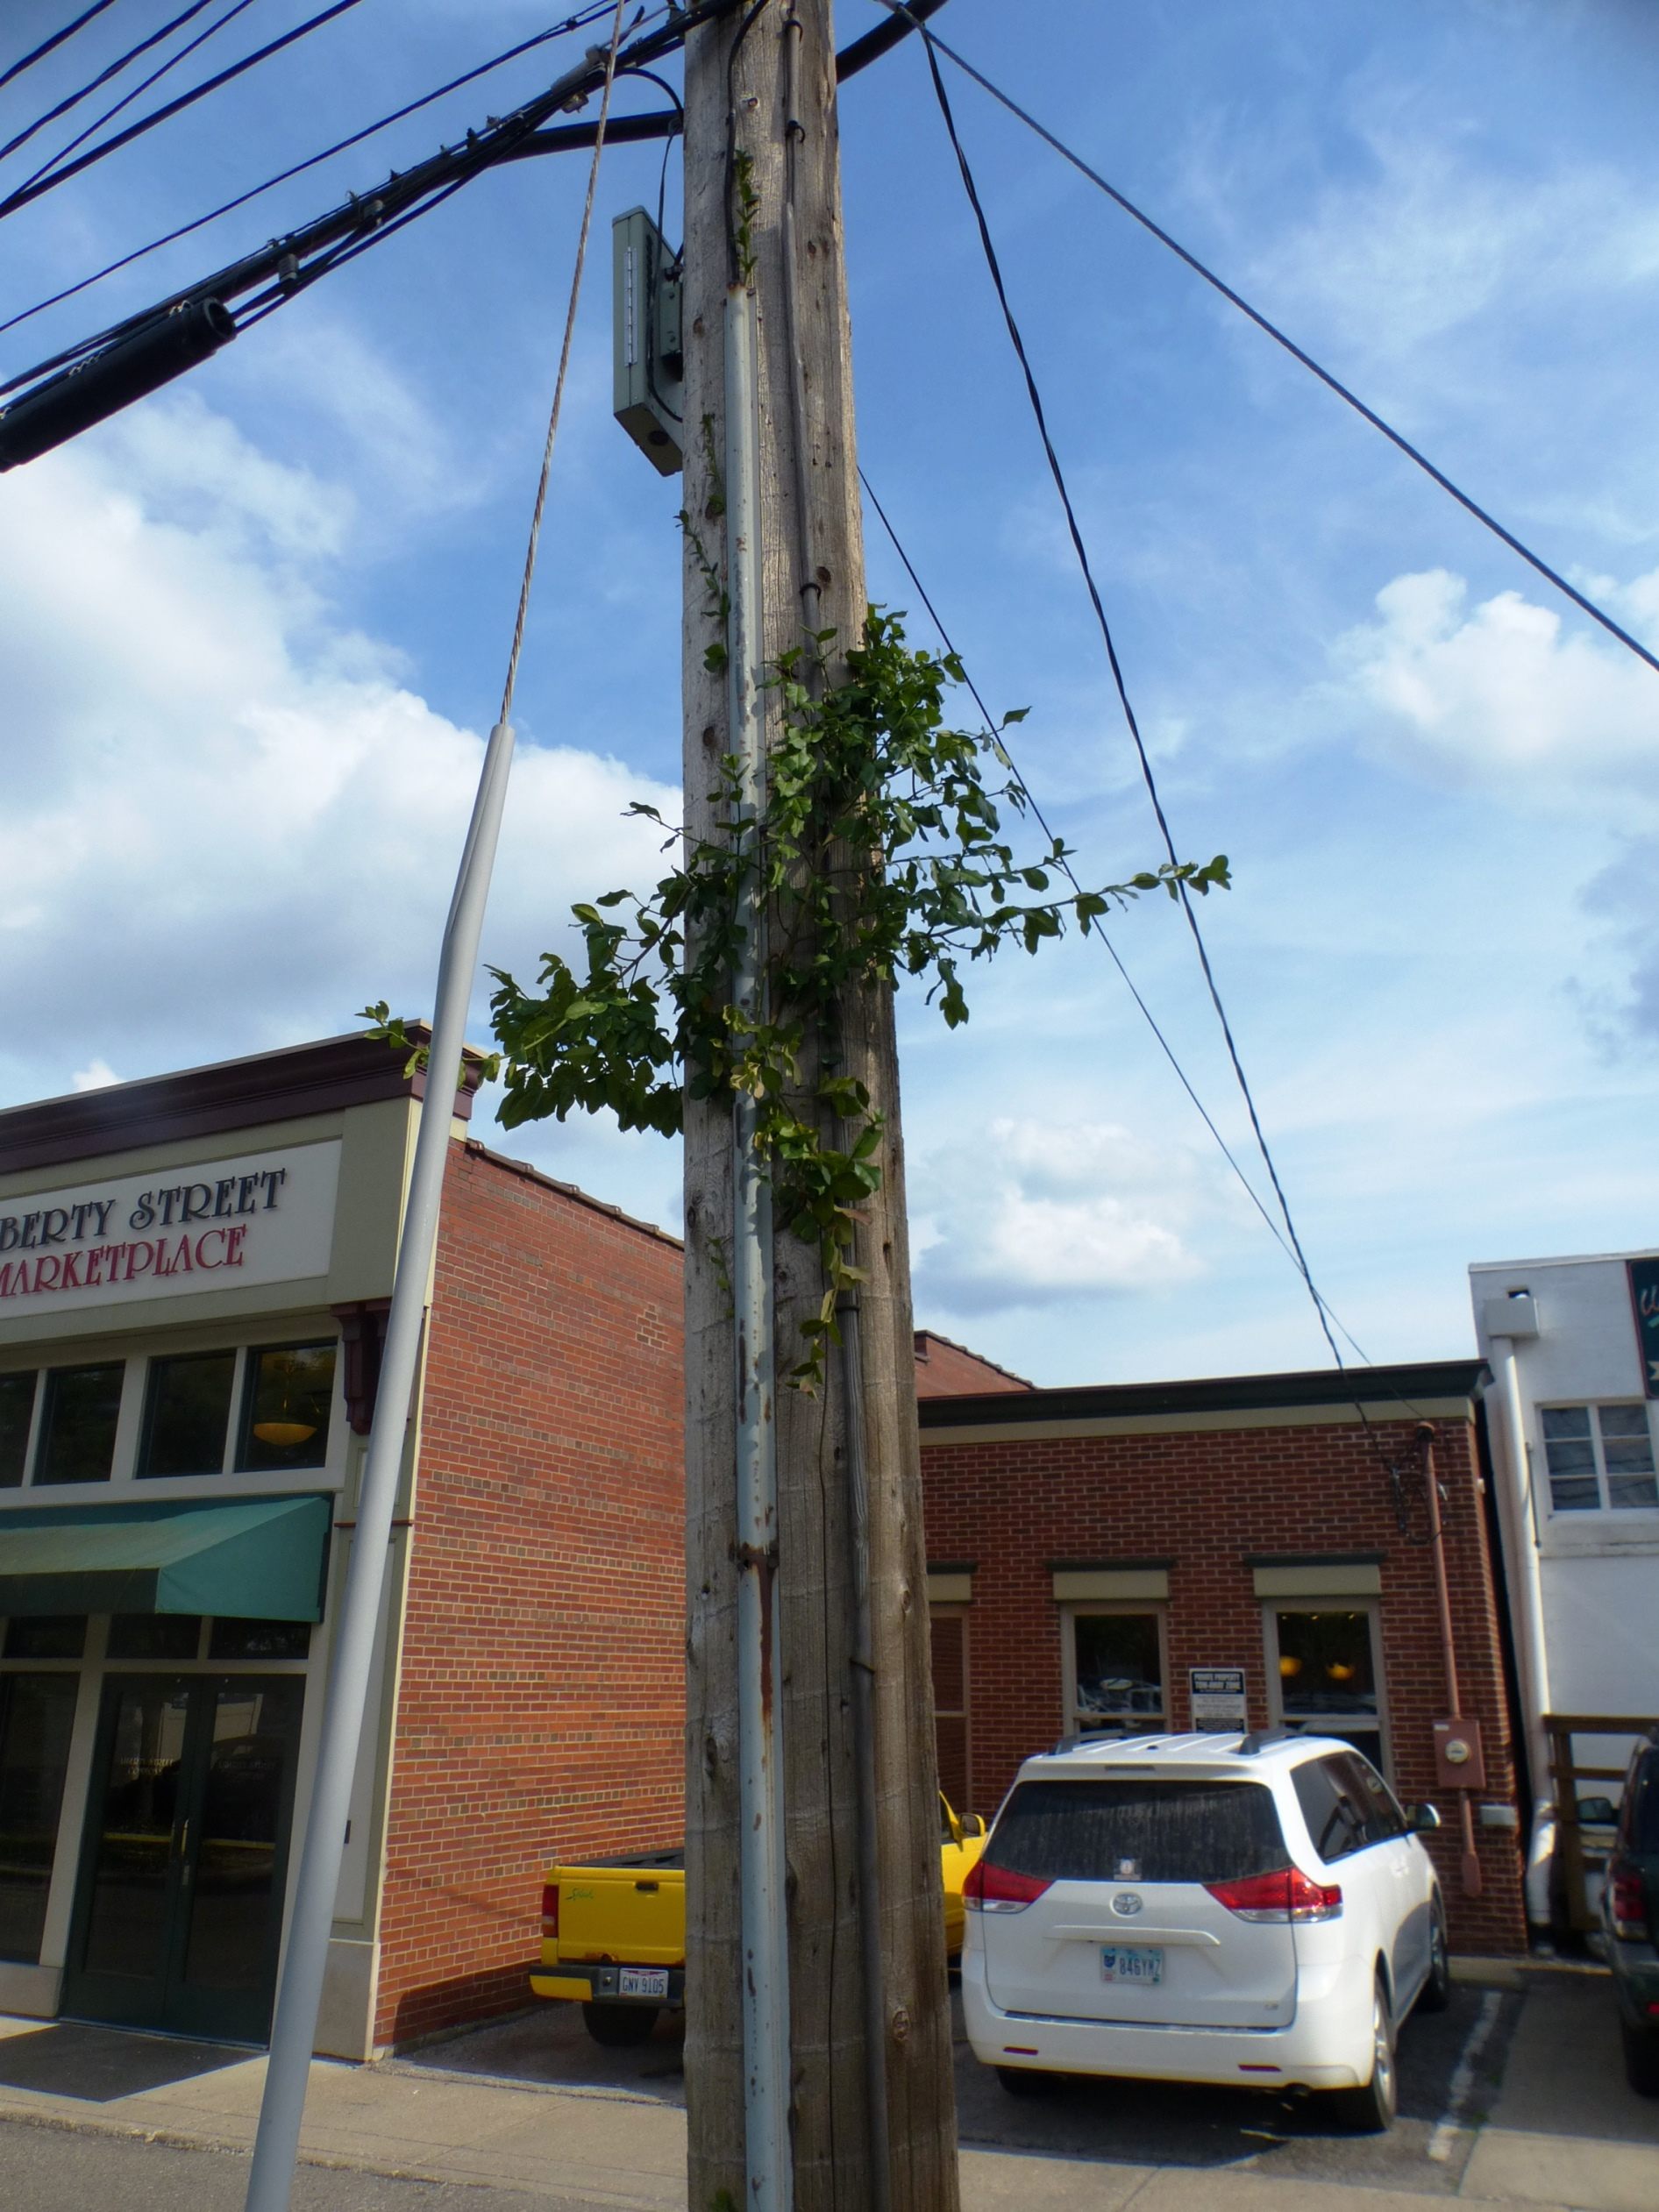 euonymus emerges up the utility pole